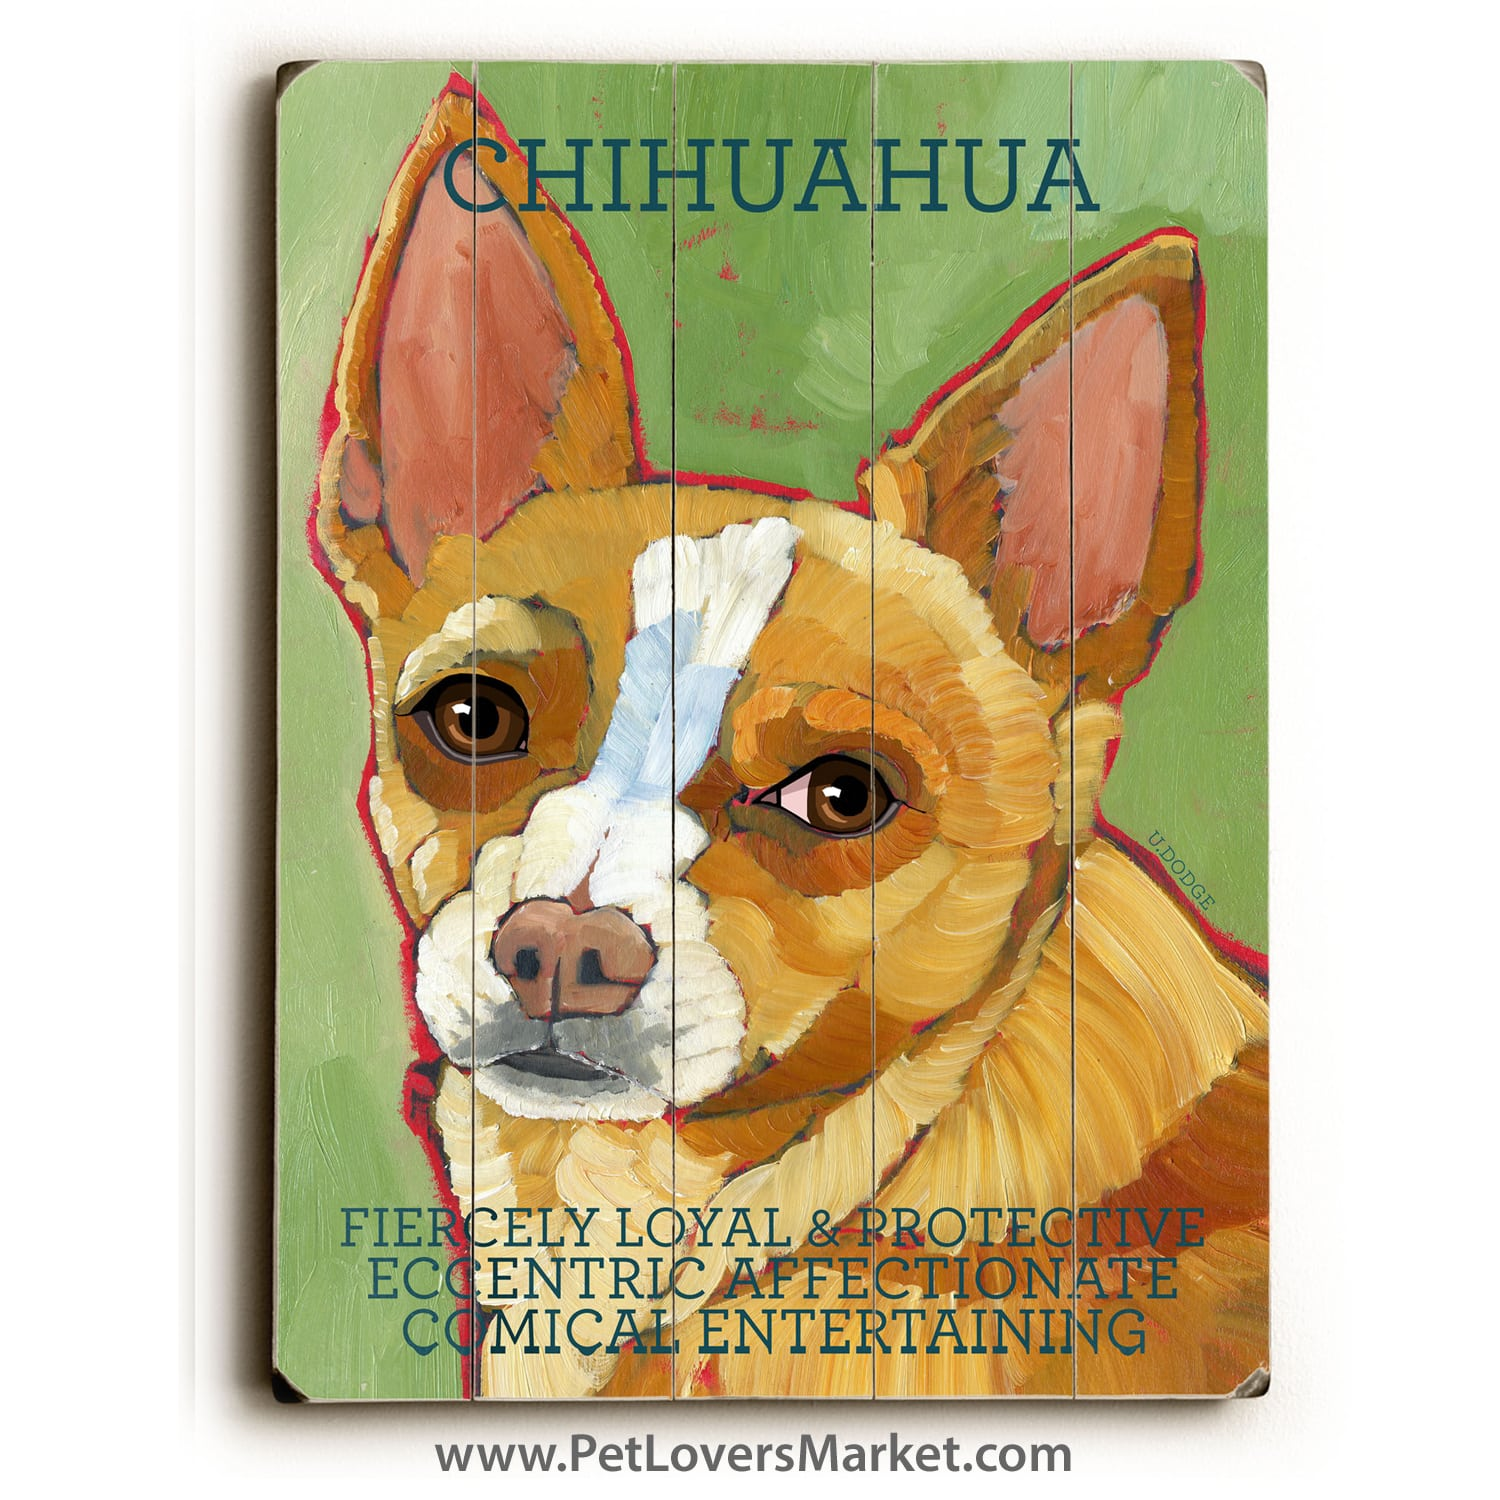 Chihuahua: Dog Print on Wood